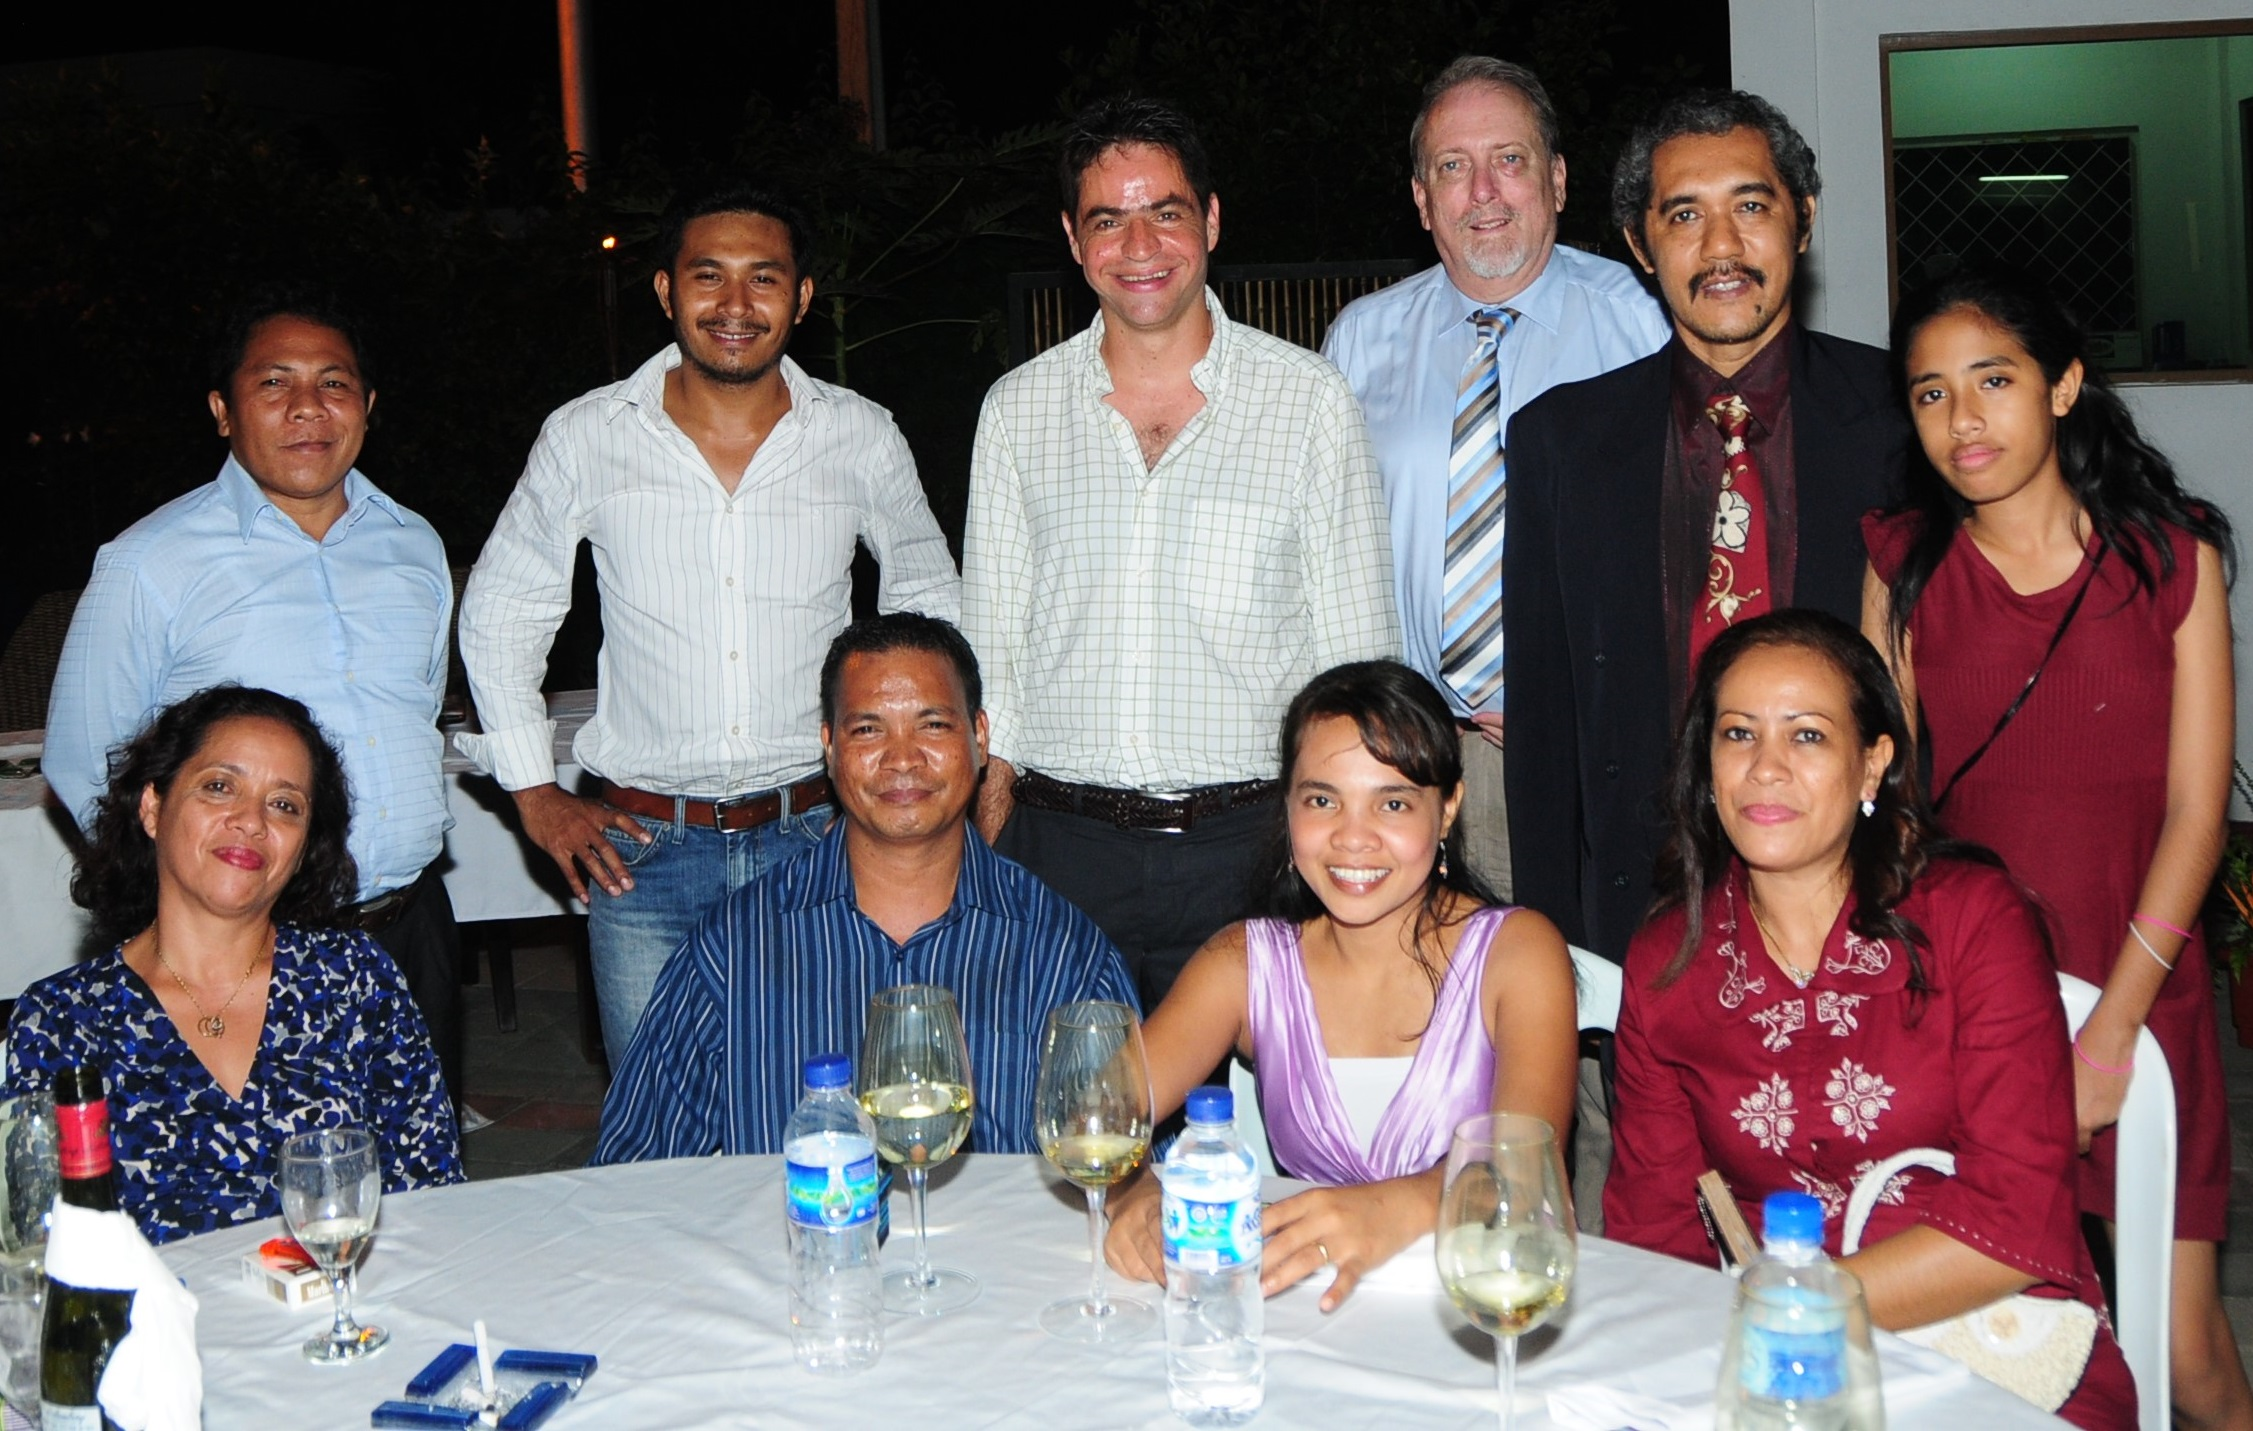 Ray Murray (third from right) at the author's wedding in Dili in 2010